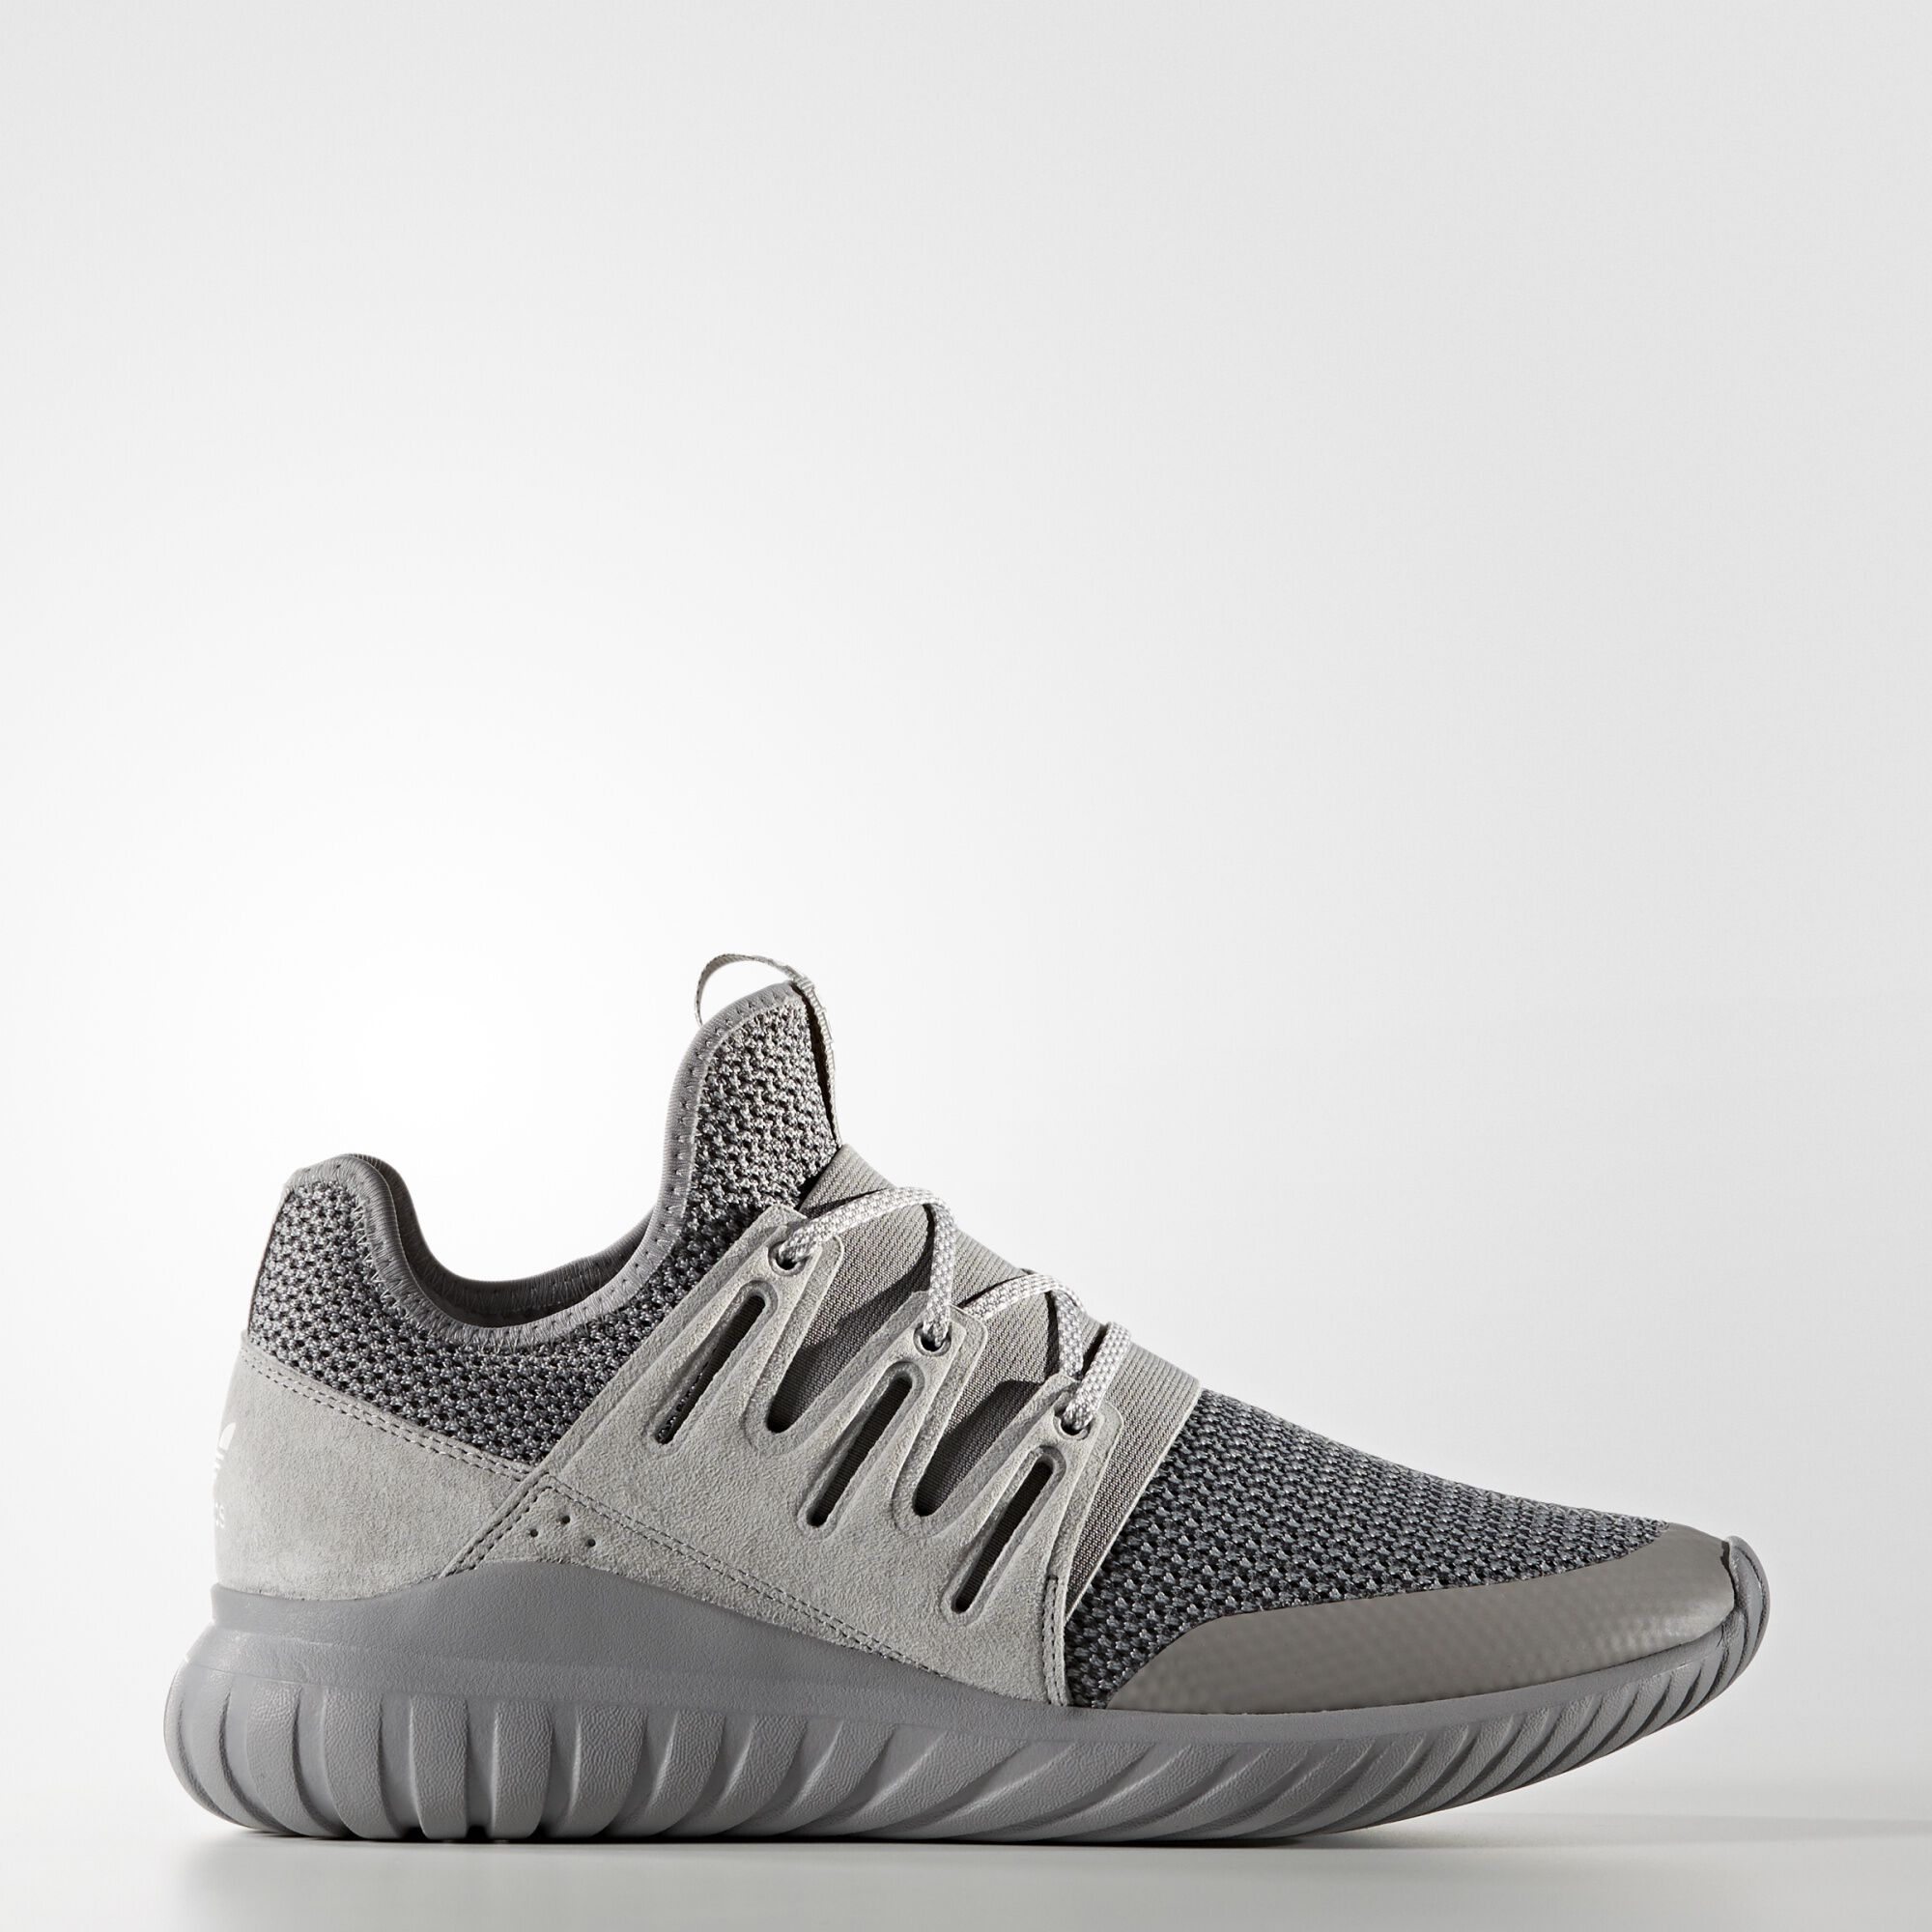 This adidas Originals Tubular Runner Is Decked Out In Zebra Stripes